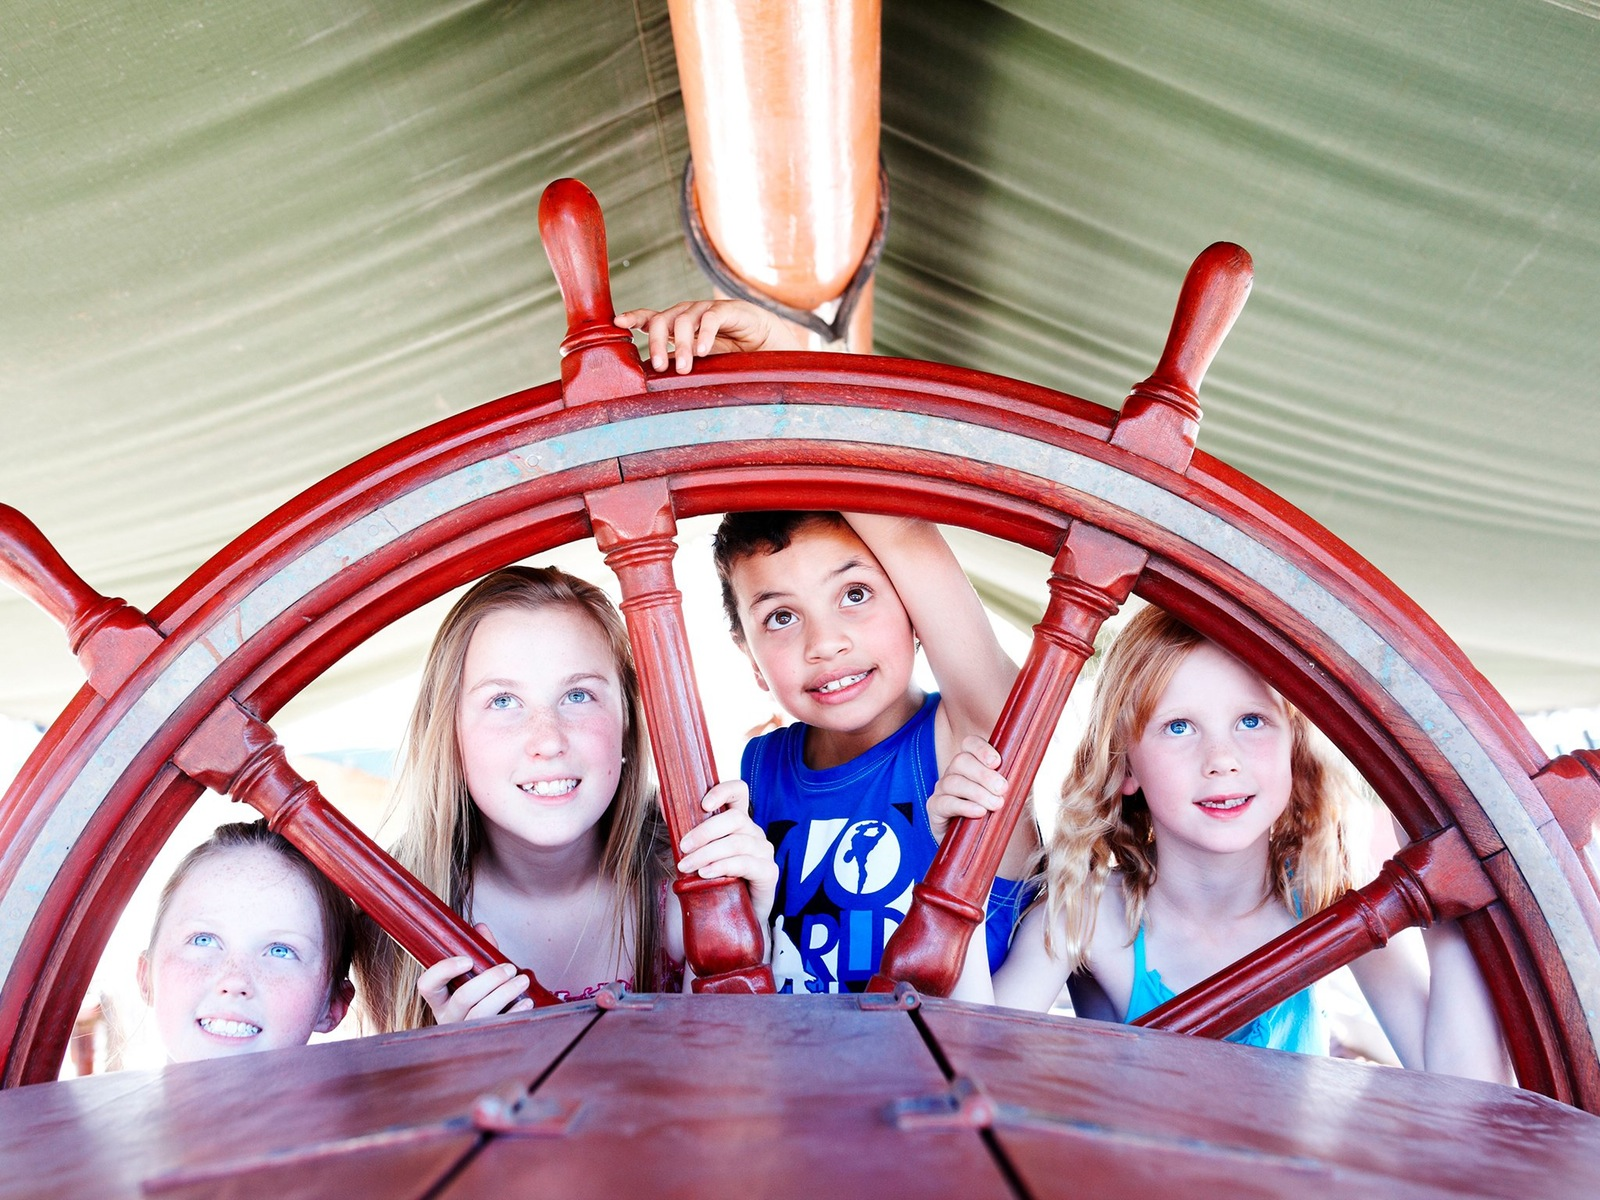 Kids on the Tall Ship. So much fun